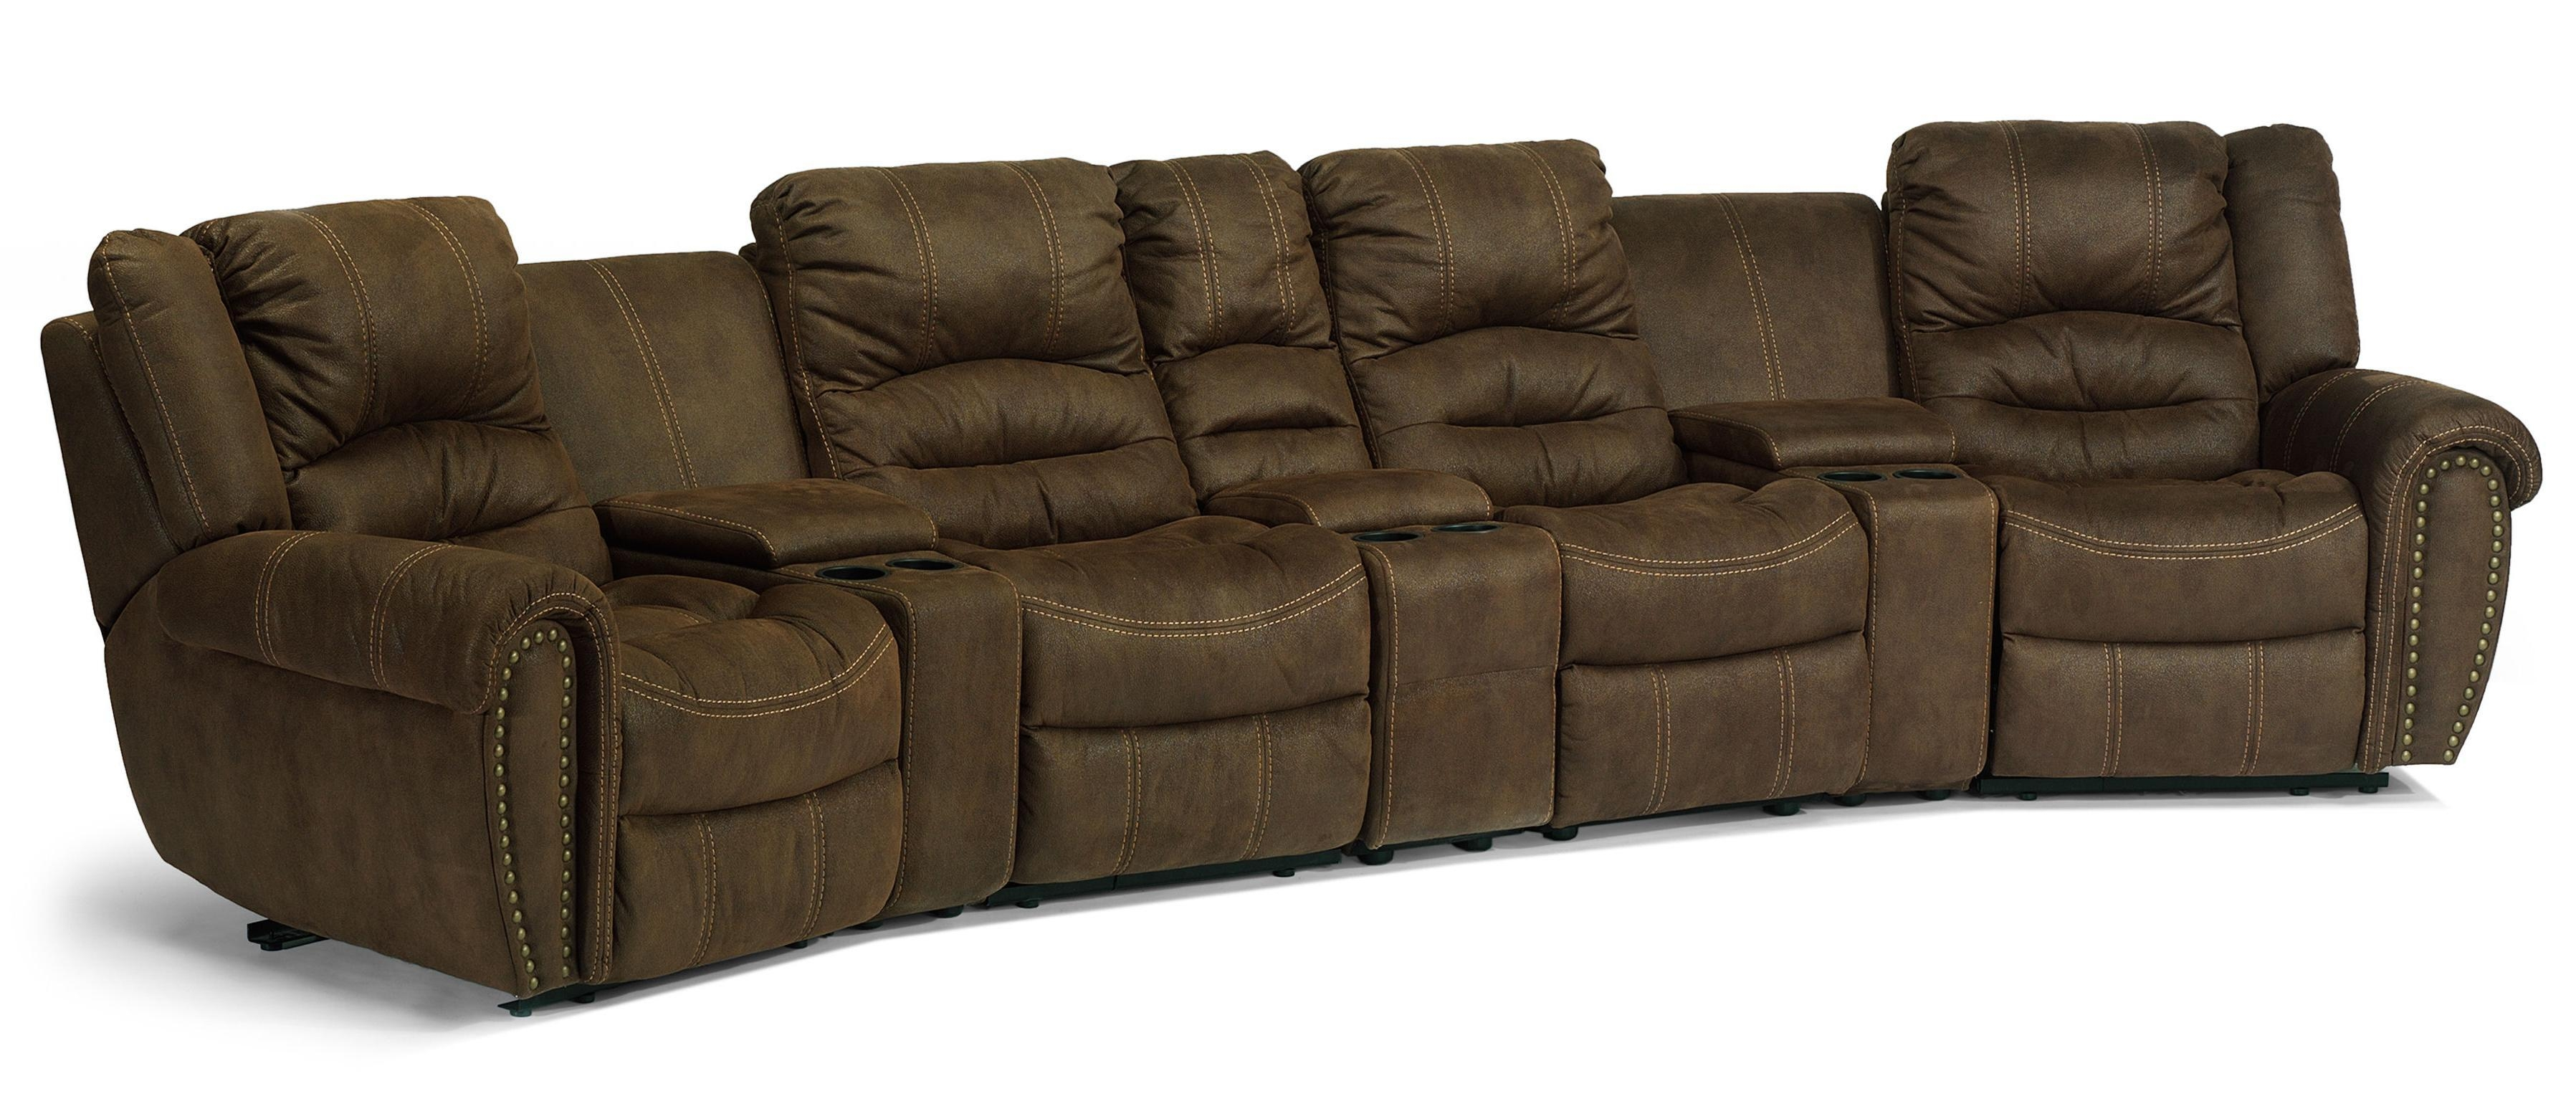 Flexsteel Latitudes – New Town Curved Reclining Sectional Sofa With Regard To Curved Sectional Sofas With Recliner (Image 8 of 20)